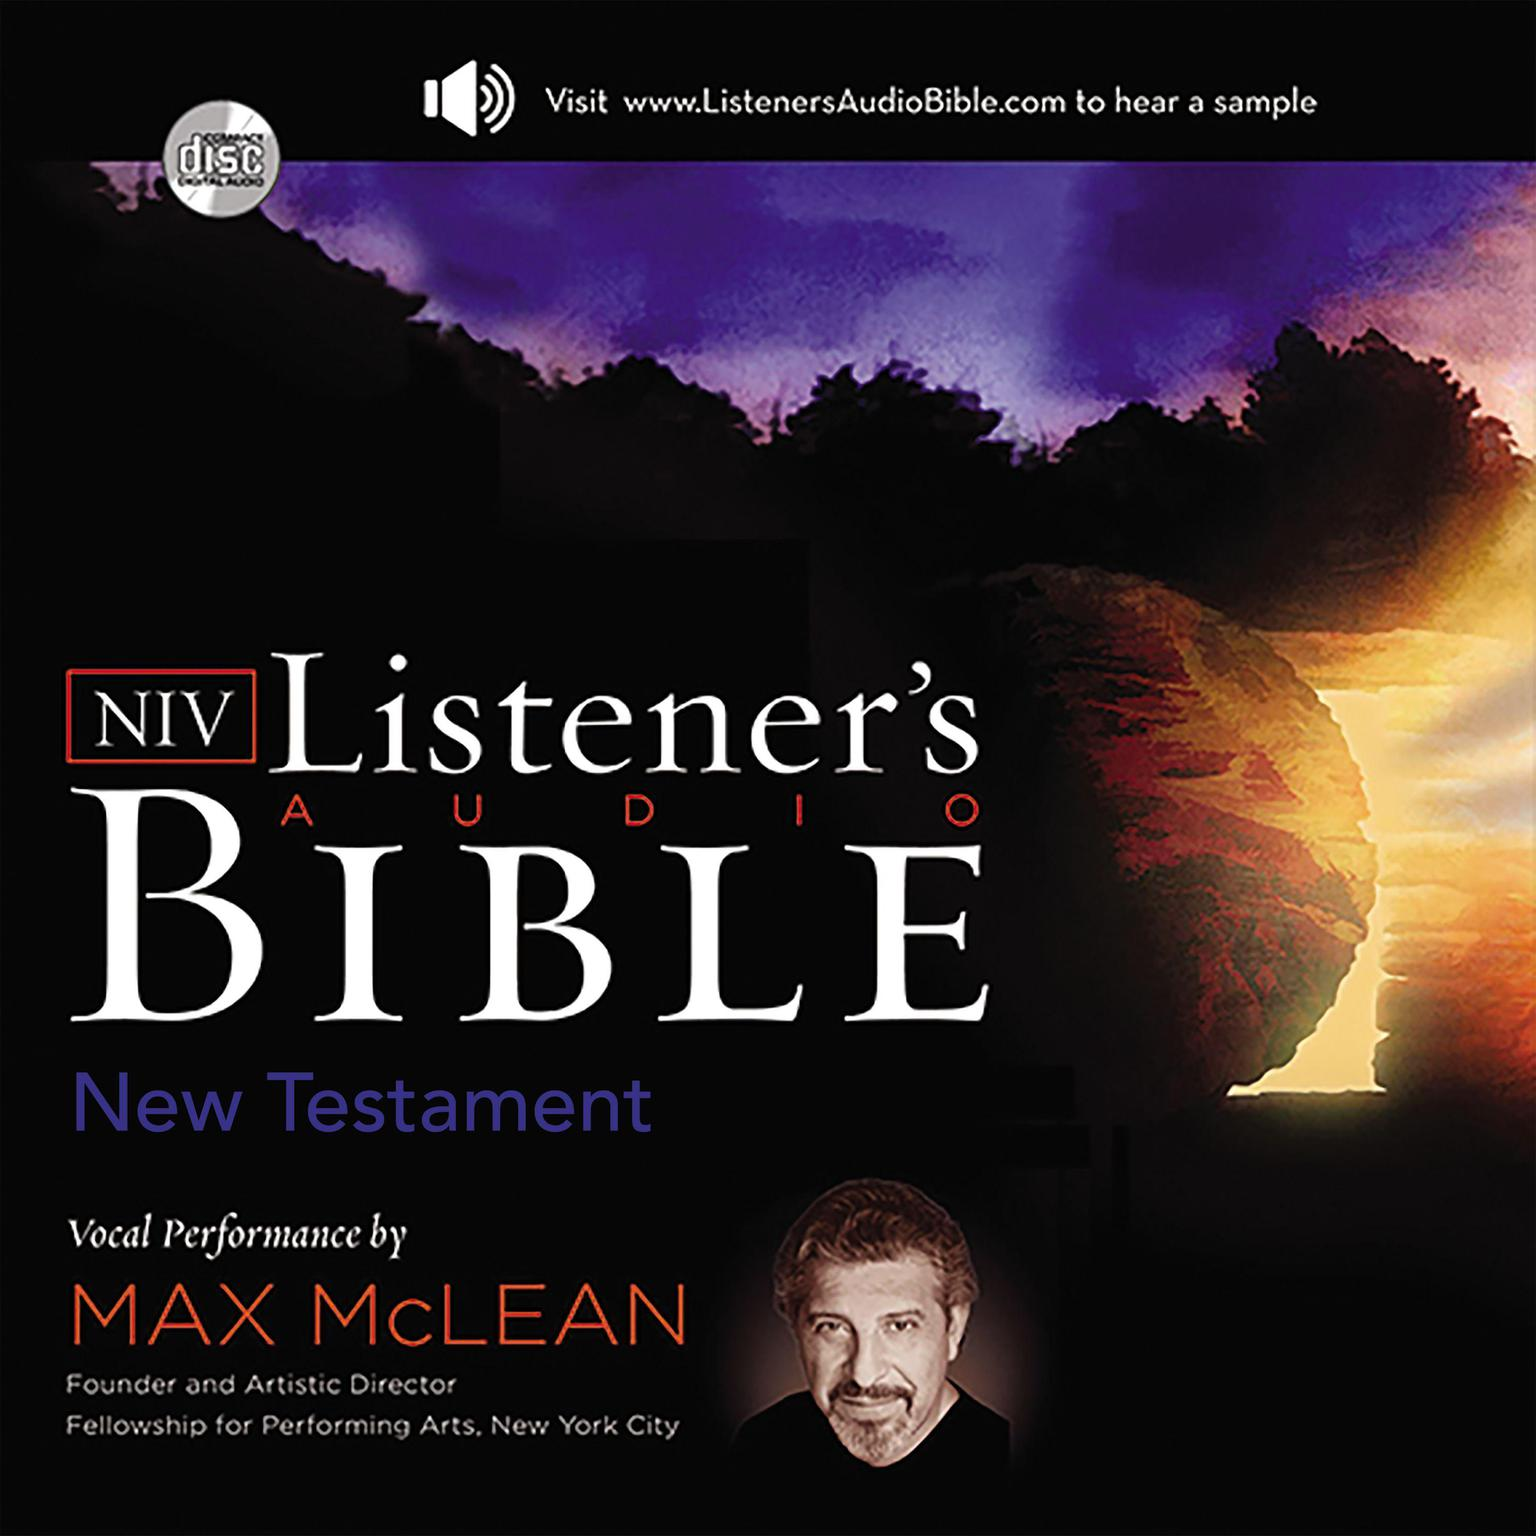 Printable Listener's Audio Bible - New International Version, NIV: New Testament: Vocal Performance by Max McLean Audiobook Cover Art